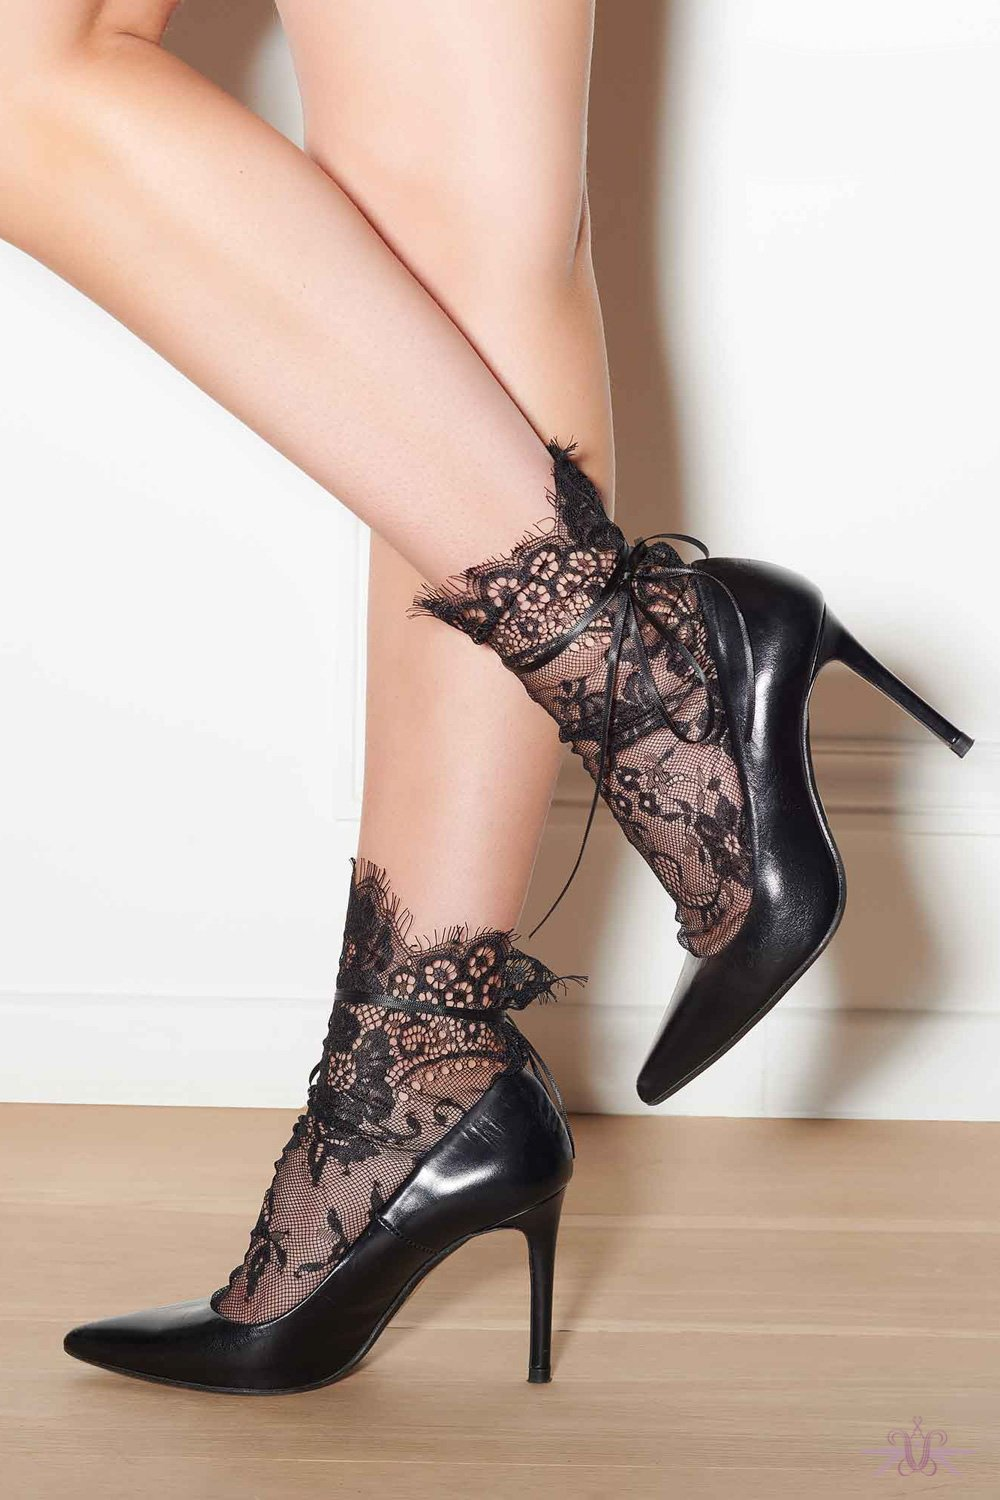 Maison Close Black Lace Socks